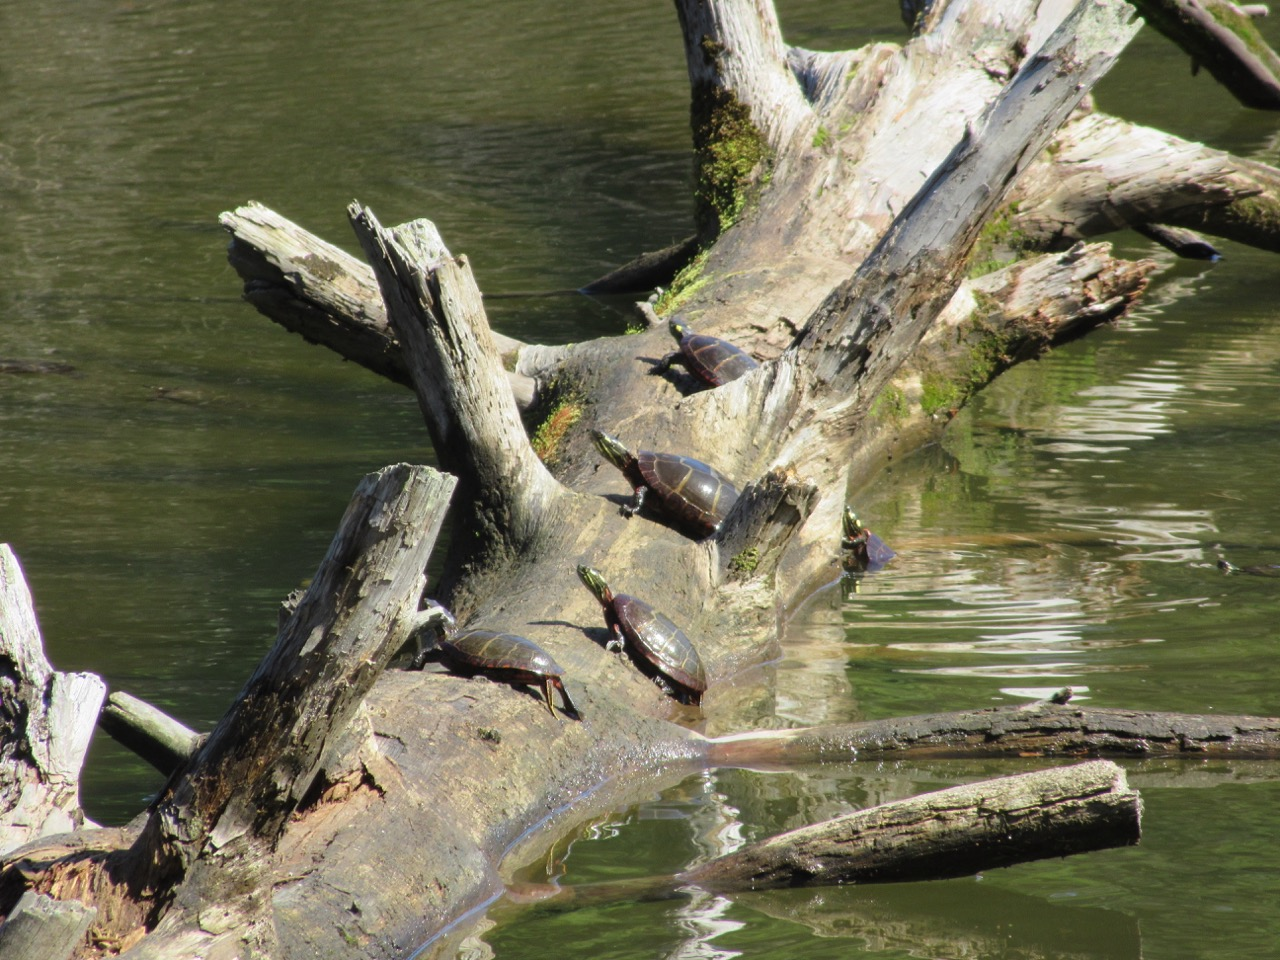 Turtles on the Log